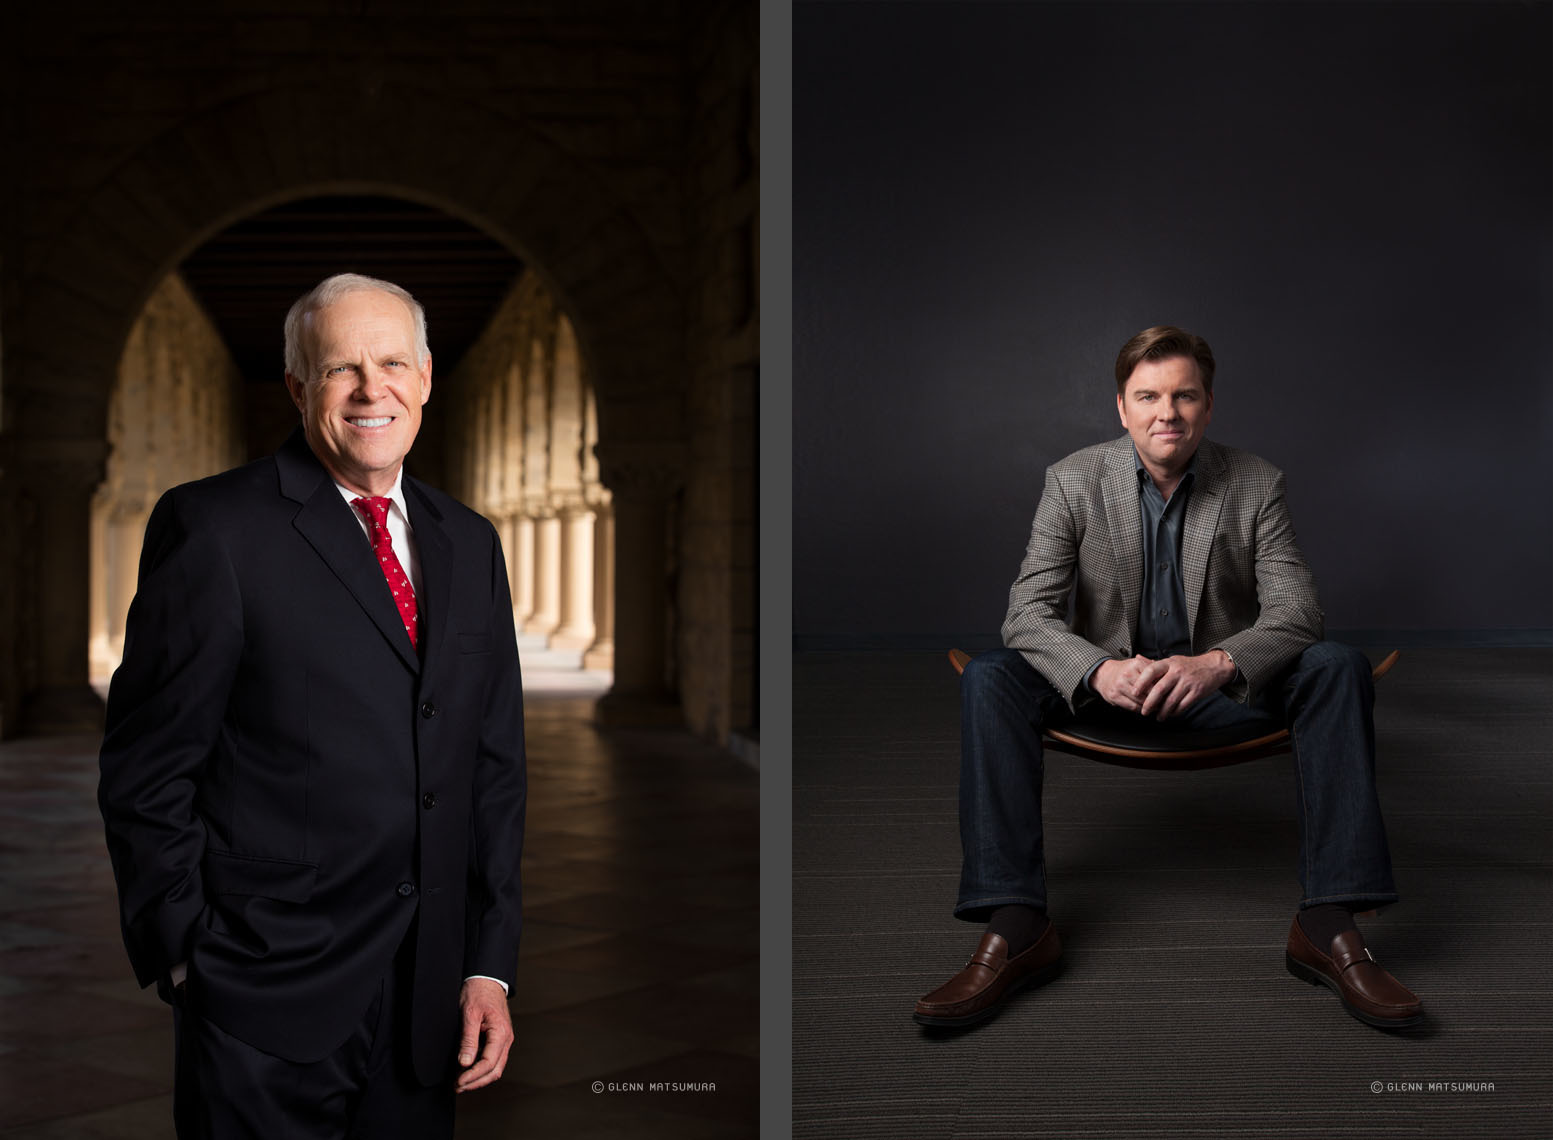 (L) Stanford President John L. Hennessy photographed near the co